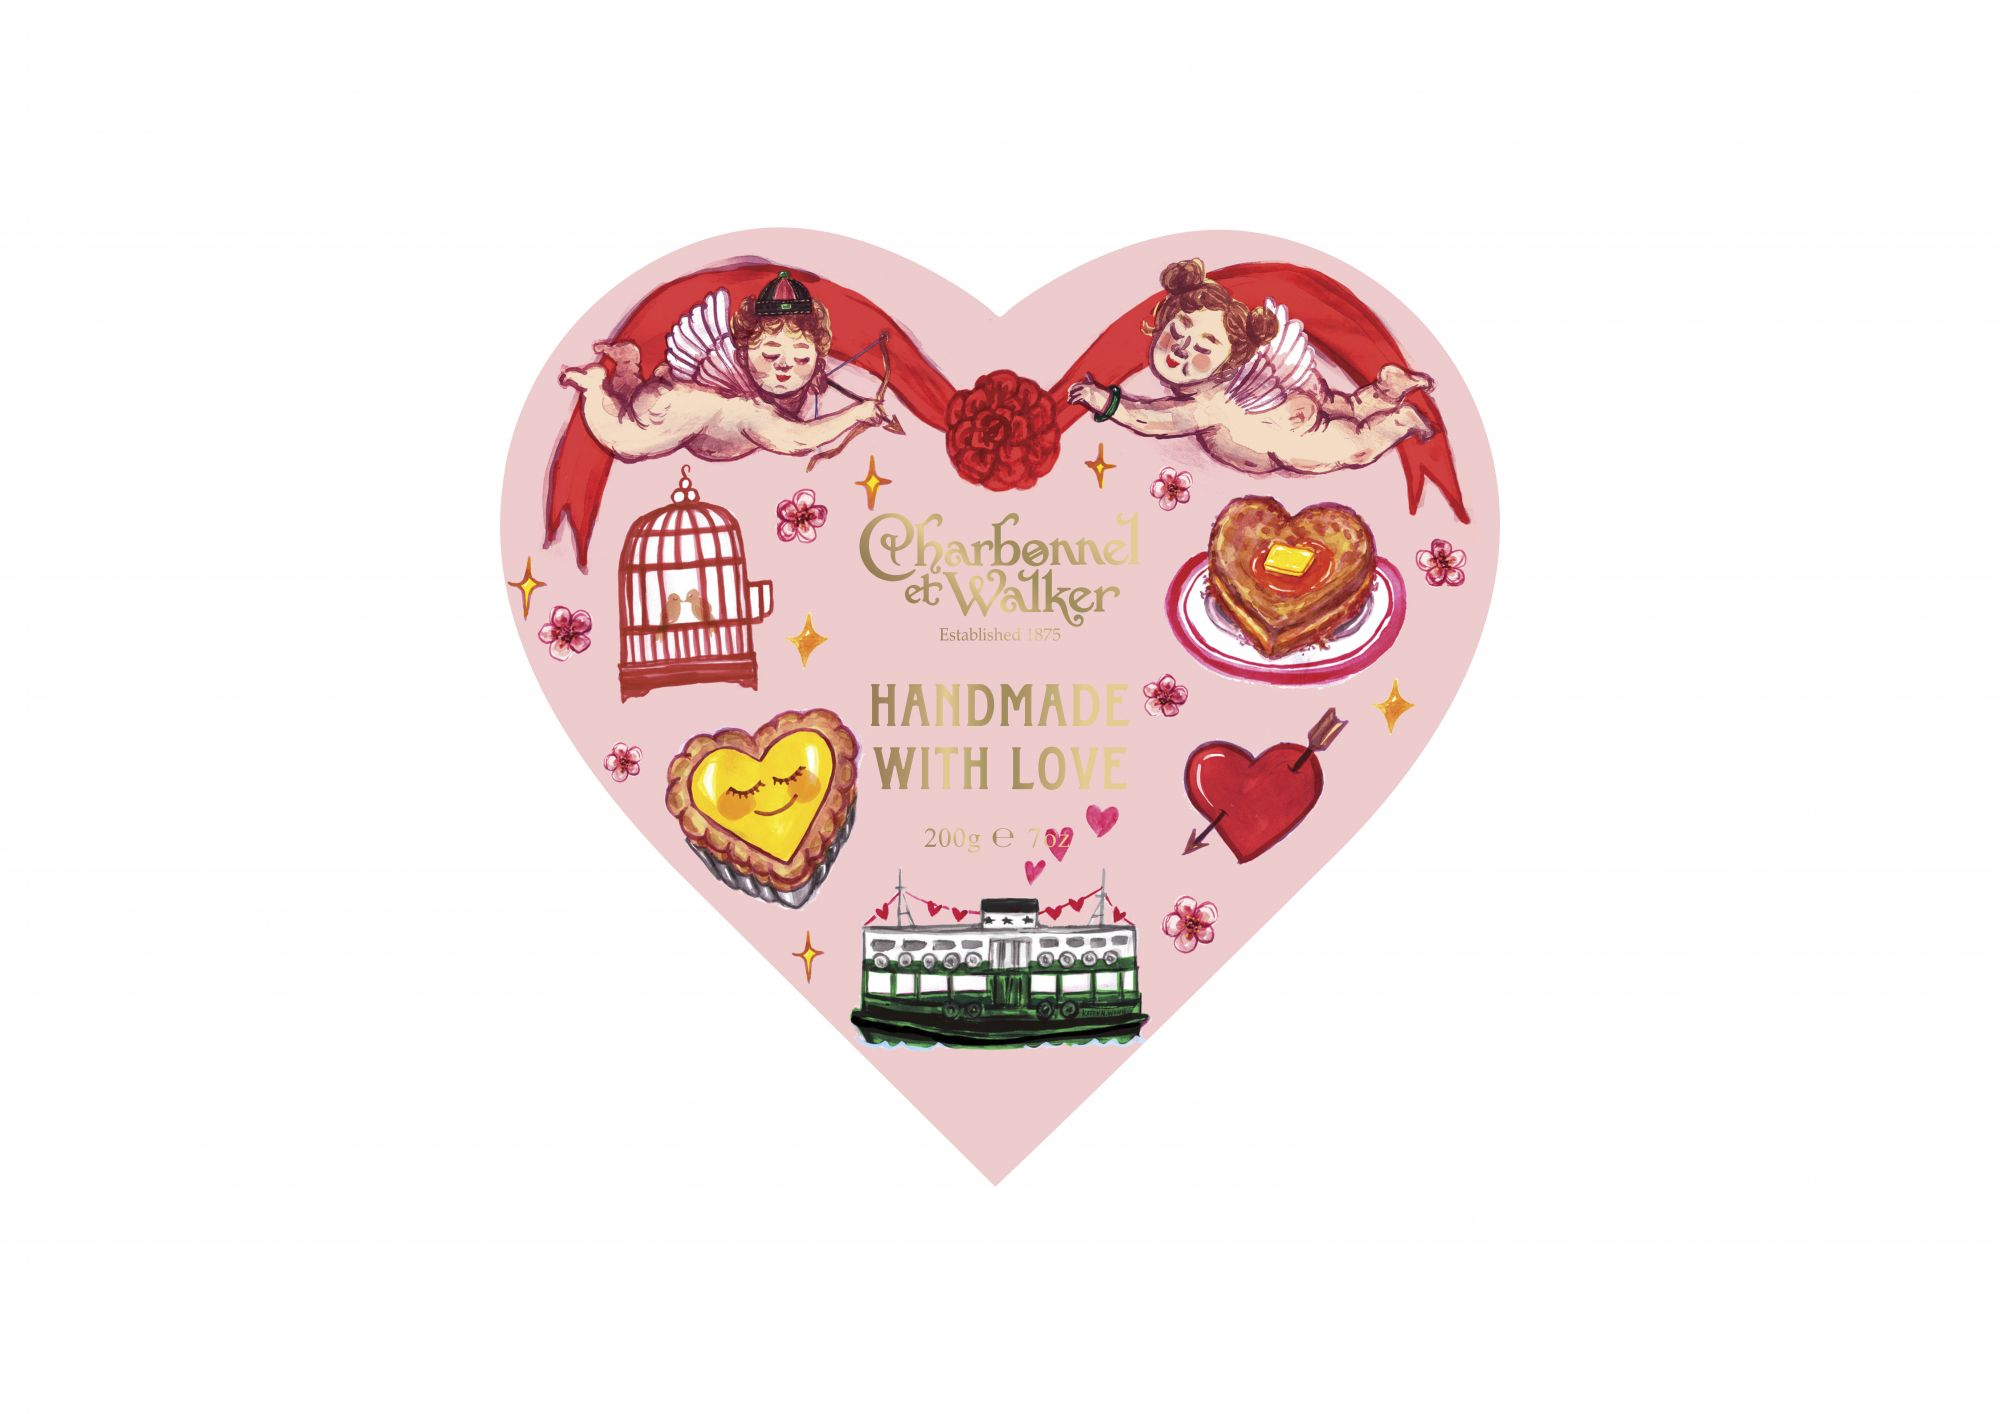 Valentine's Day 2021: Charbonnel Et Walker And Hong Kong Illustrator Kitty Wong's Cute Chocolate Box Crossover